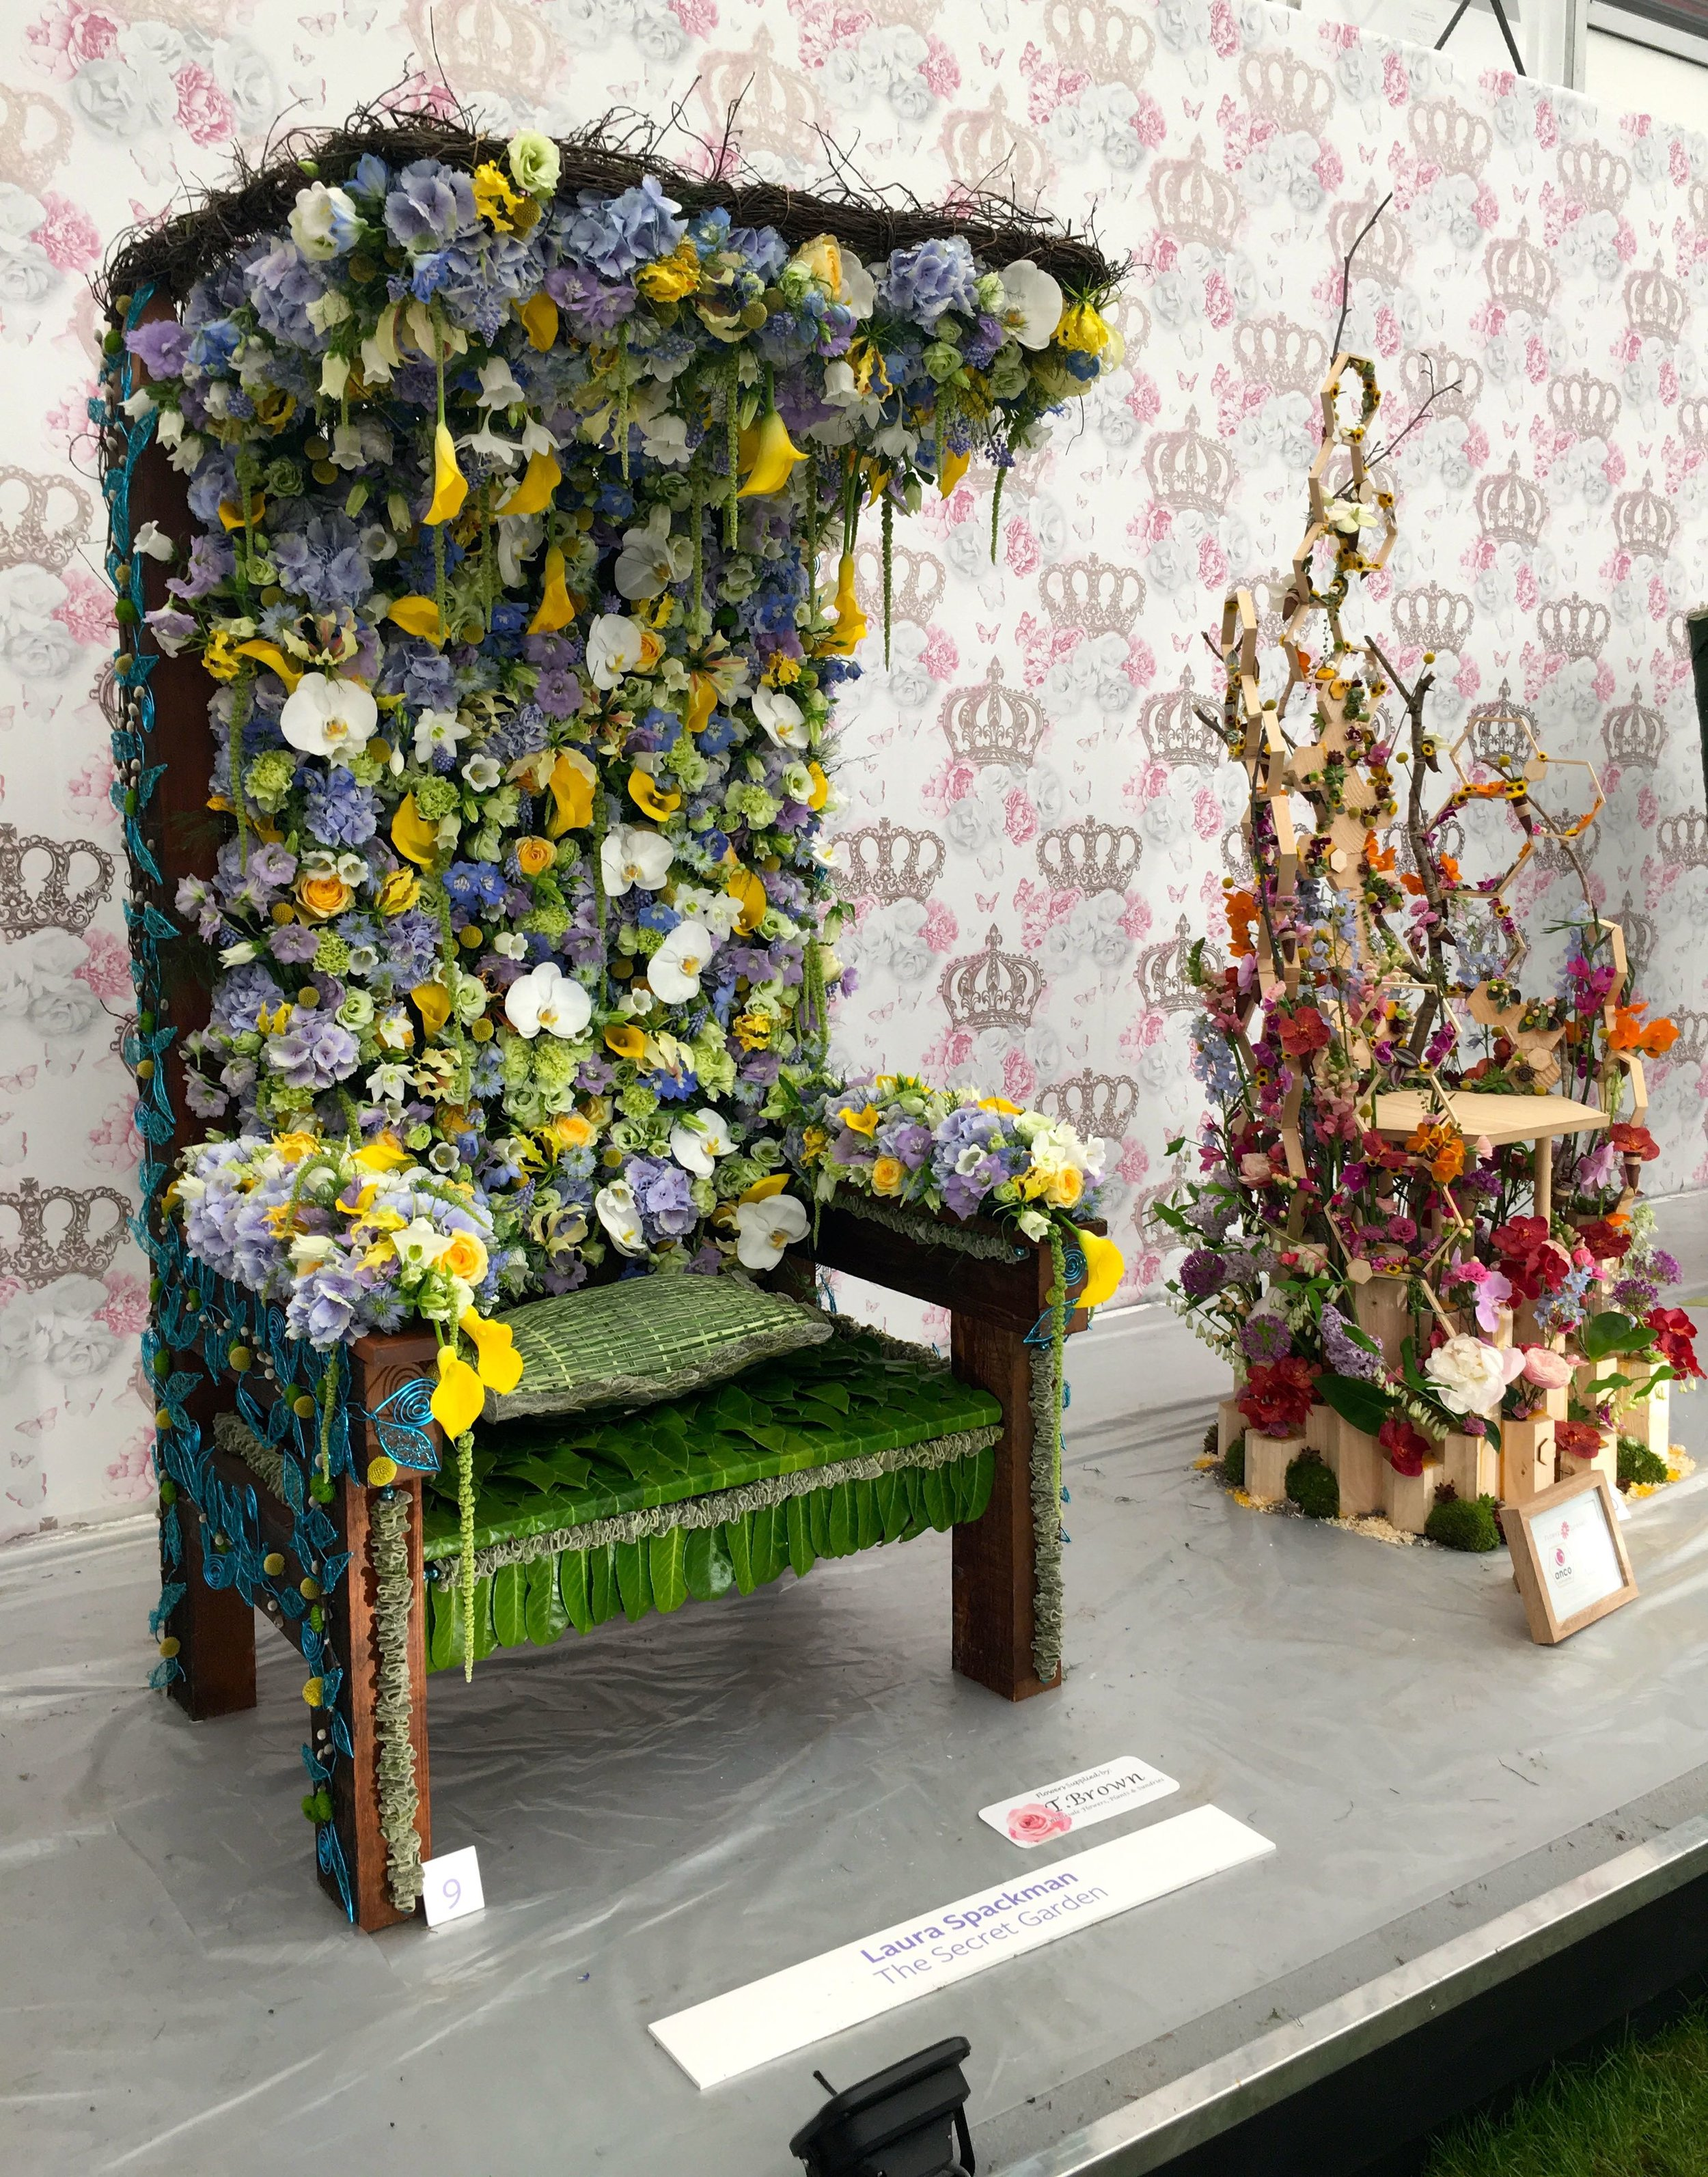 A canopied throne at the Chelsea Flower Show